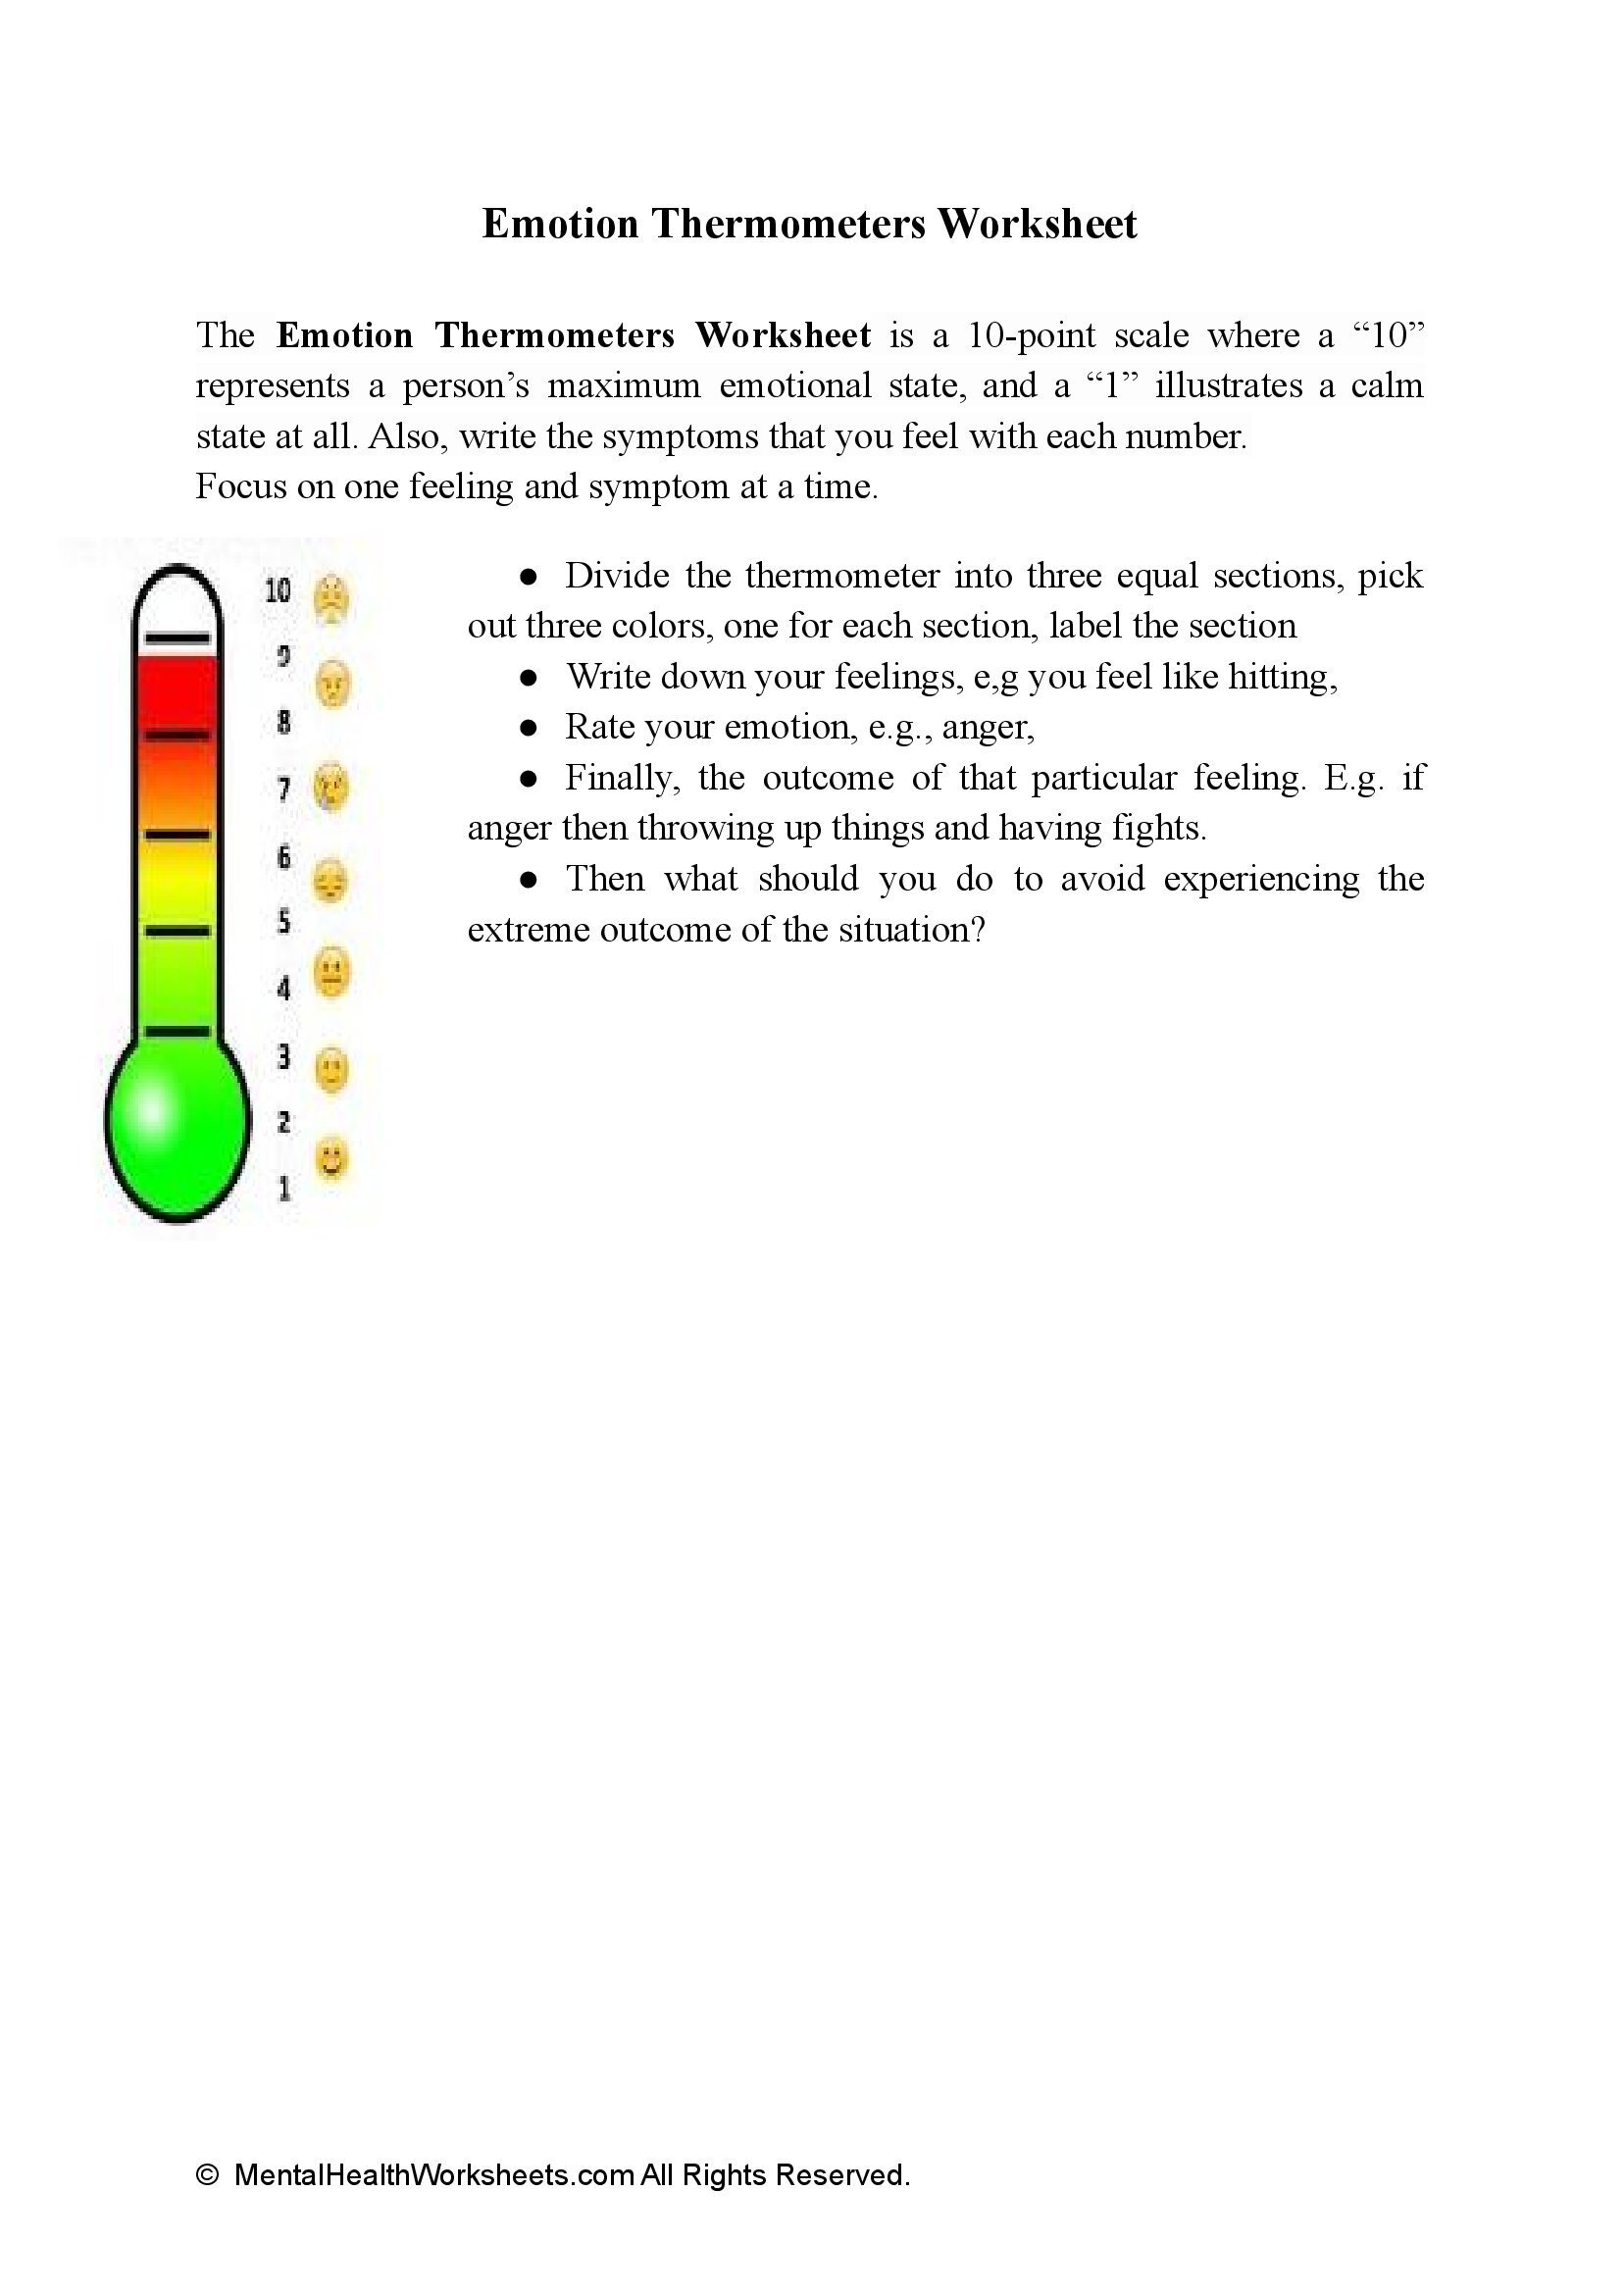 Emotion Thermometers Worksheet